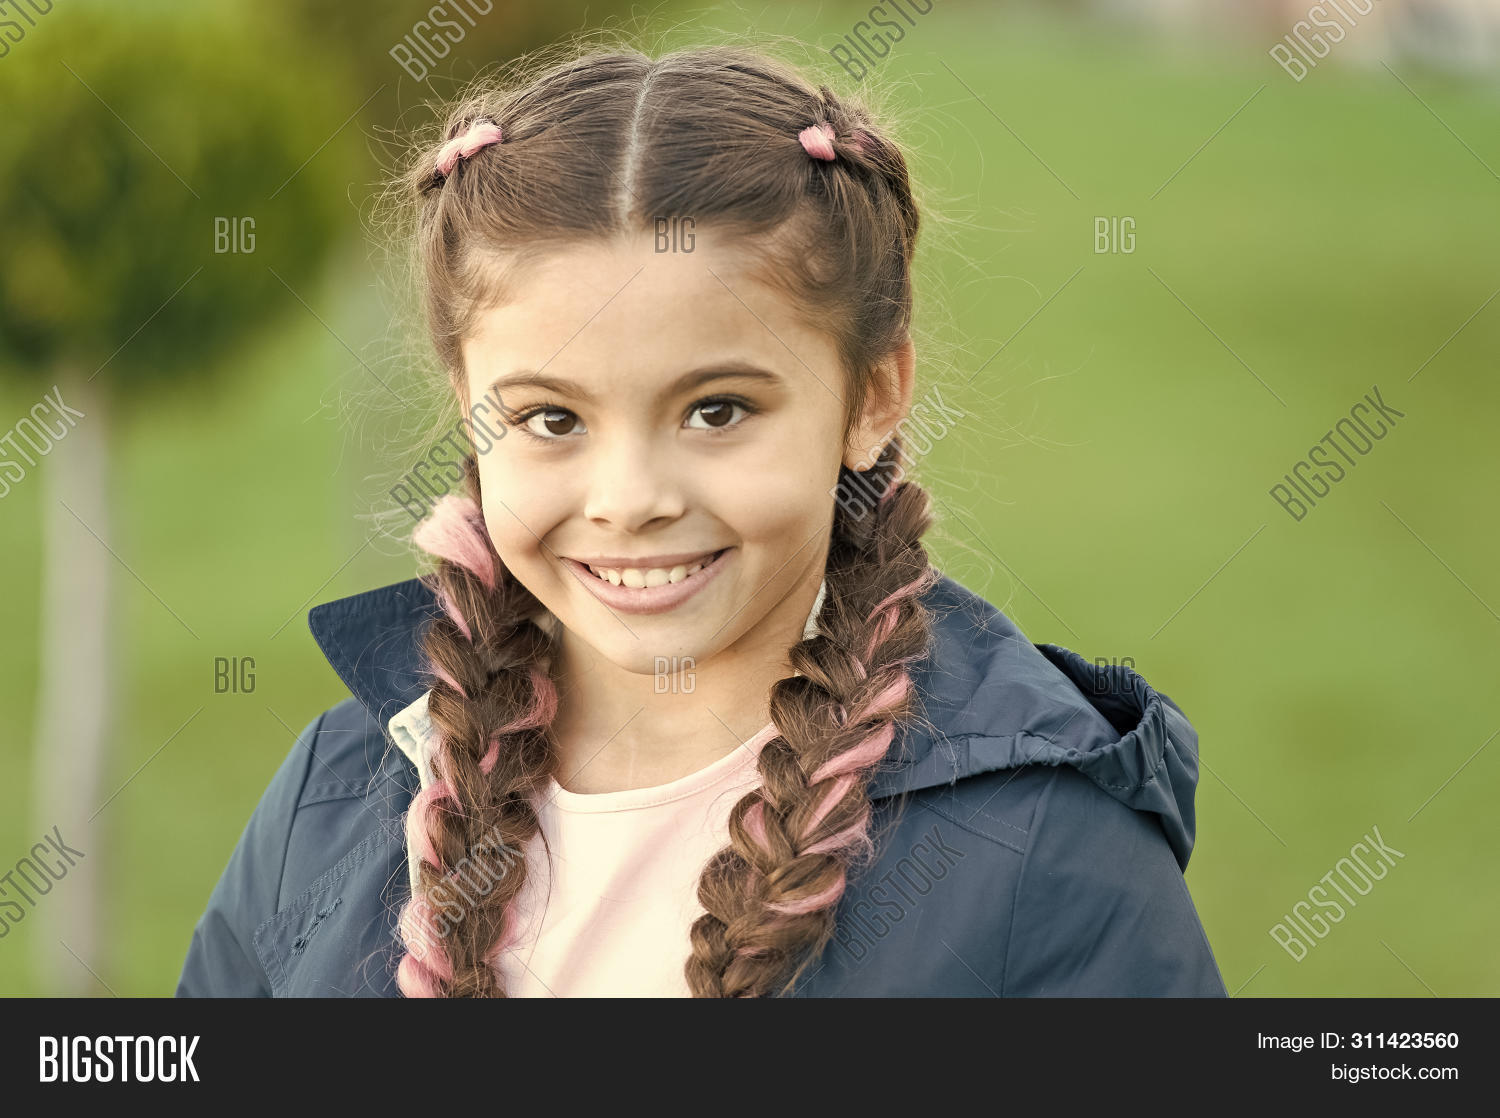 Cute Smile Image Photo Free Trial Bigstock